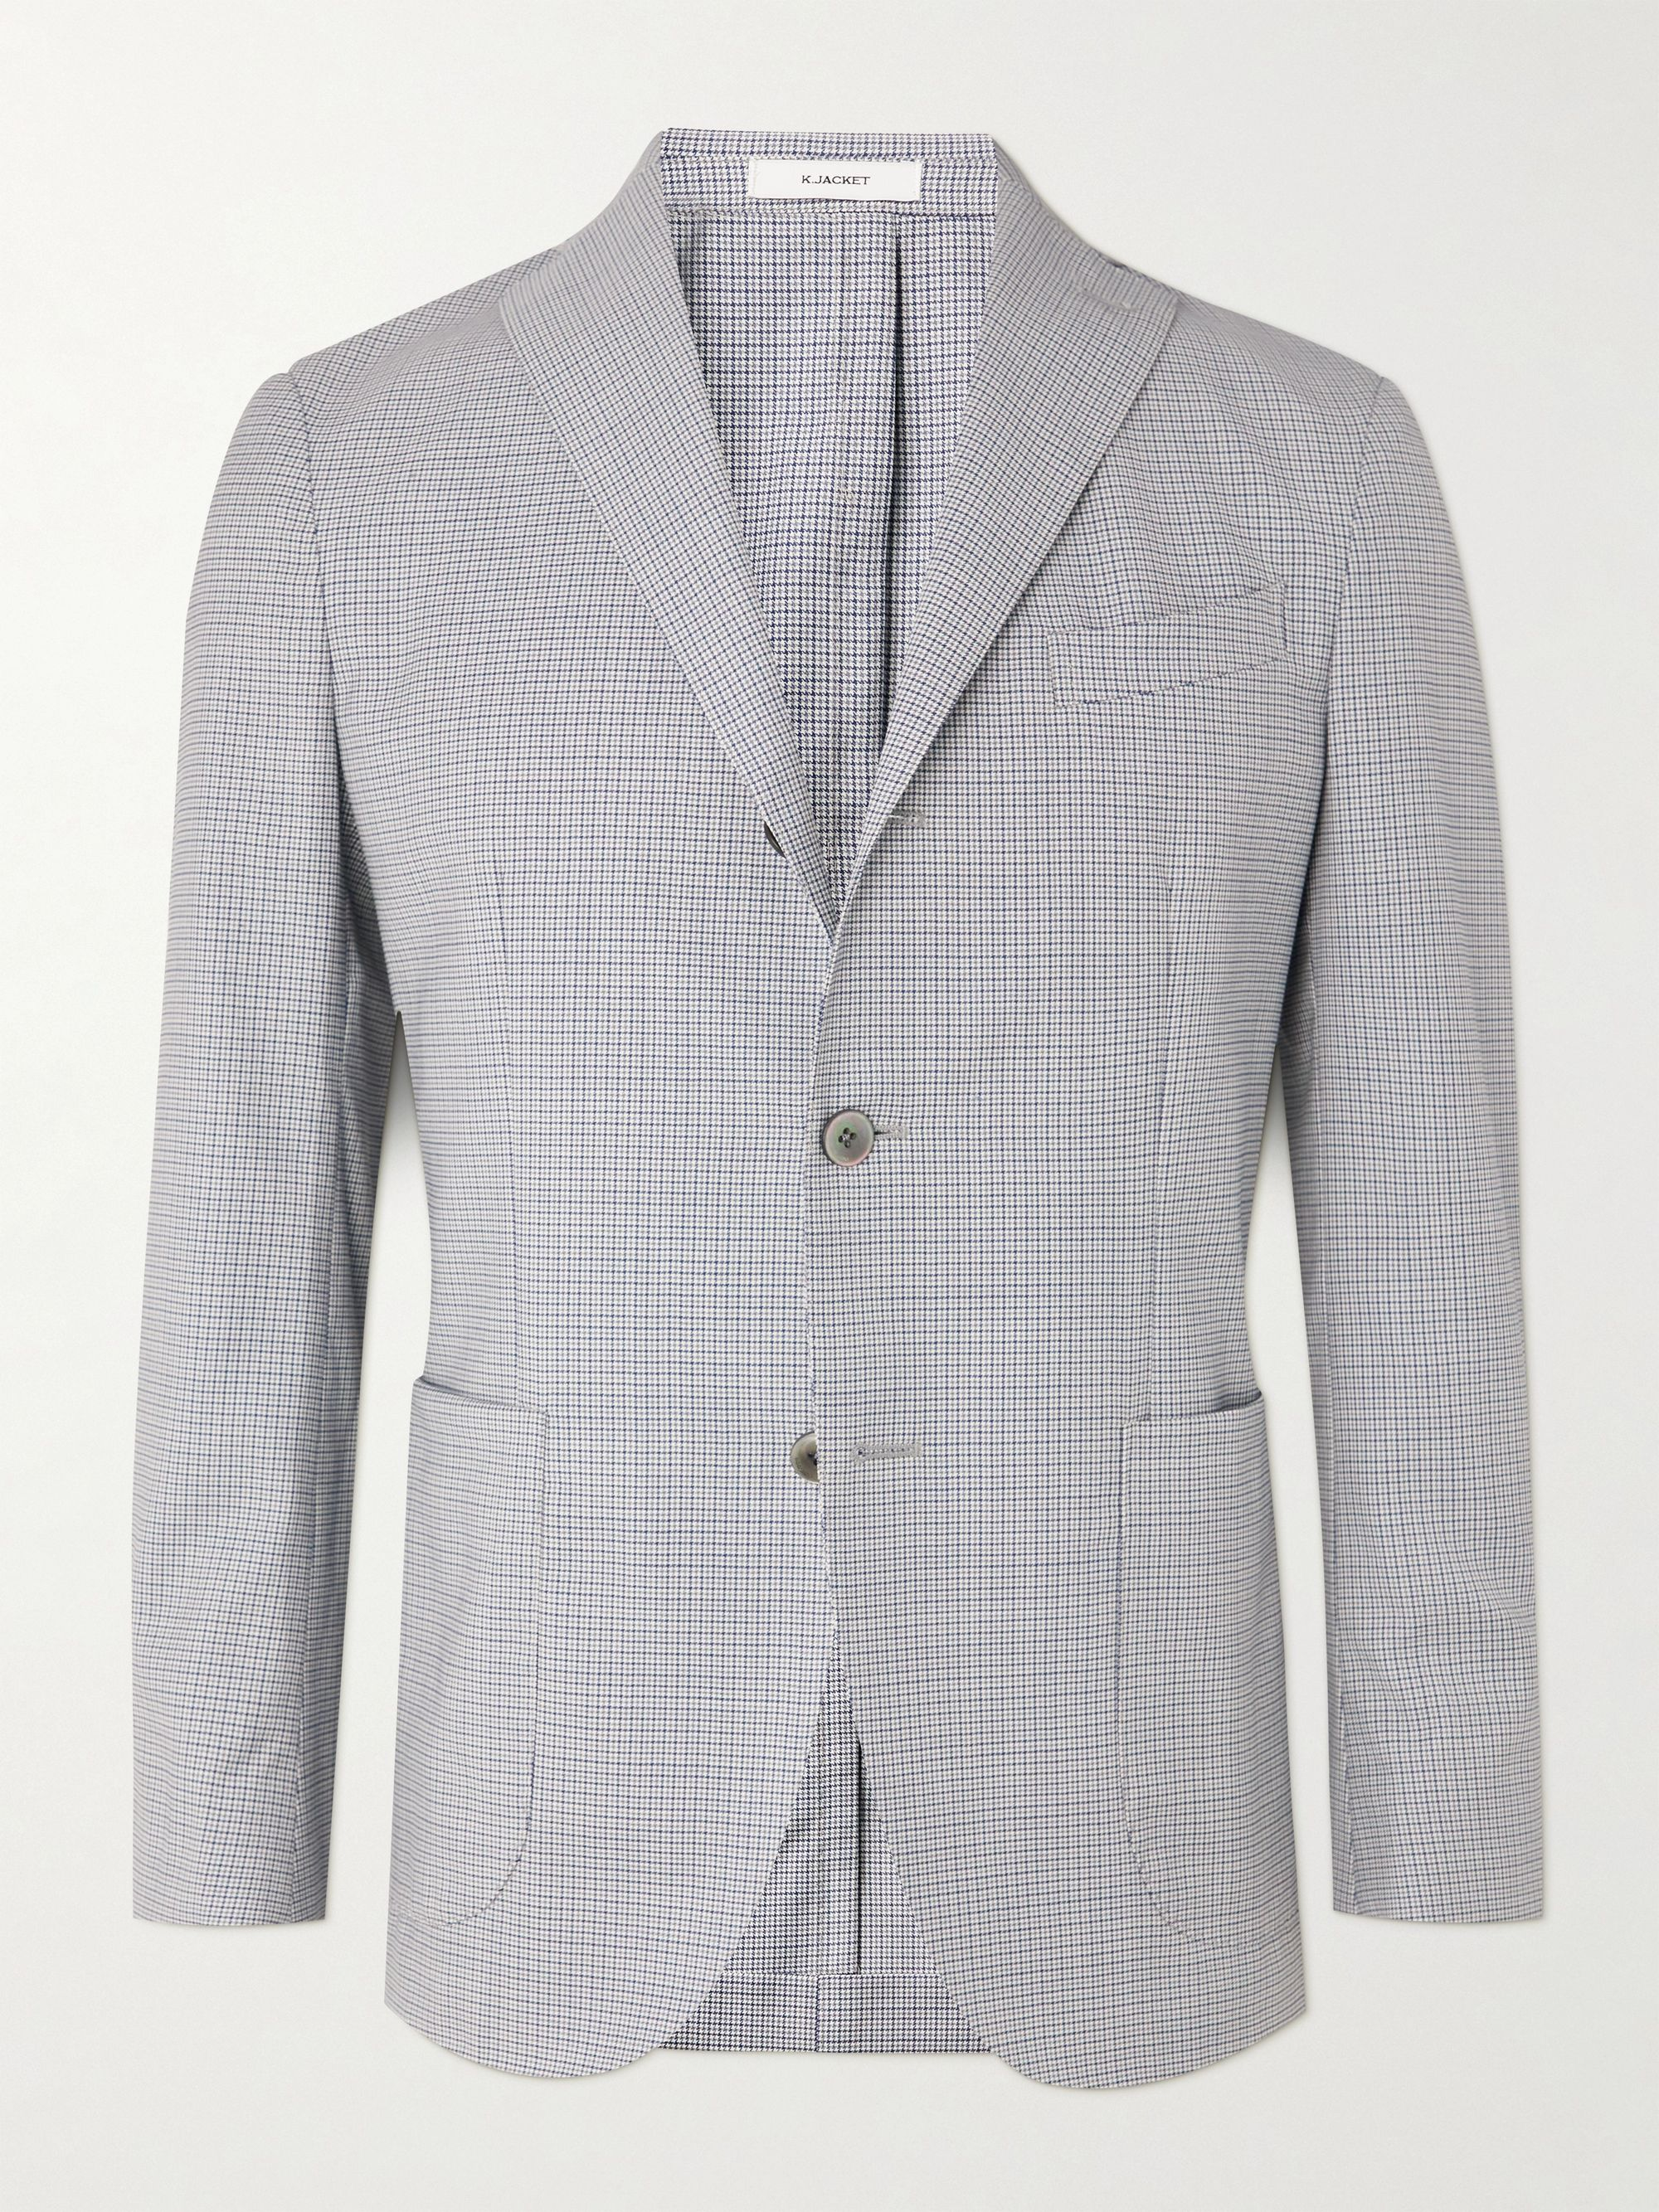 BOGLIOLI Houndstooth Virgin Wool Suit Jacket